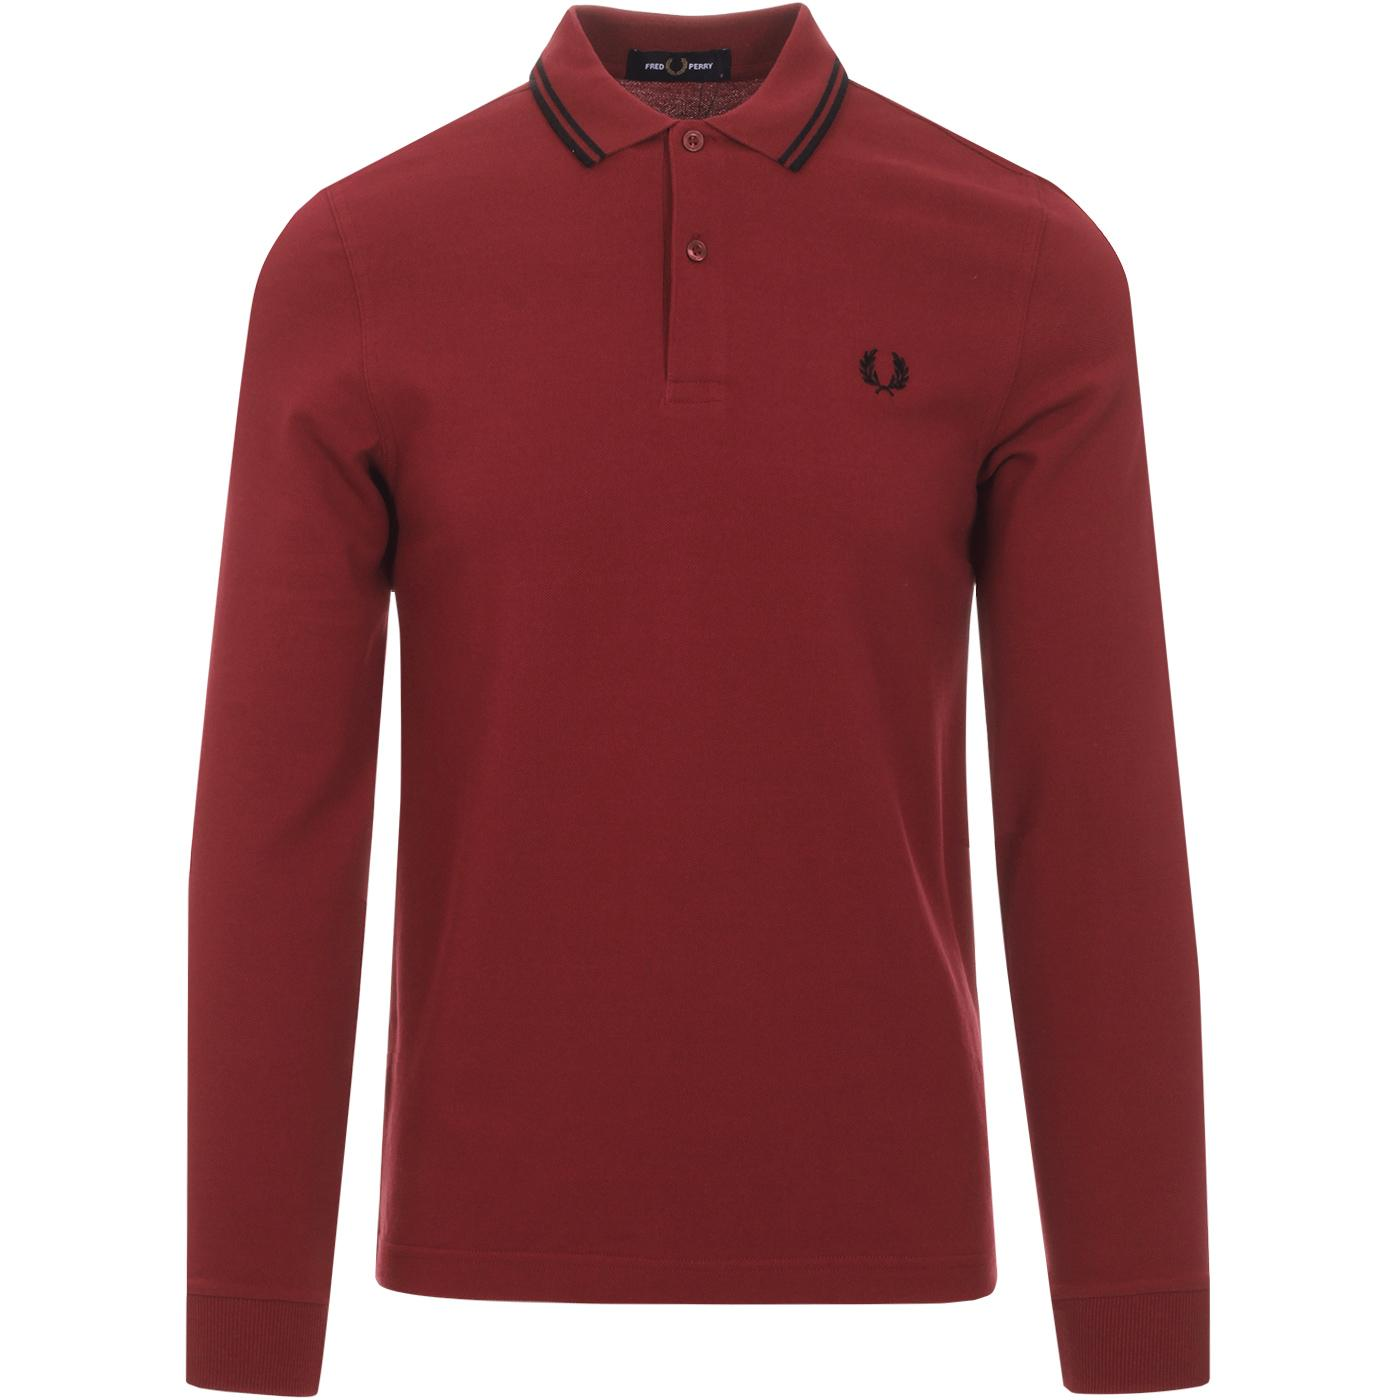 FRED PERRY Mod Twin Tipped Long Sleeve Polo (DR)